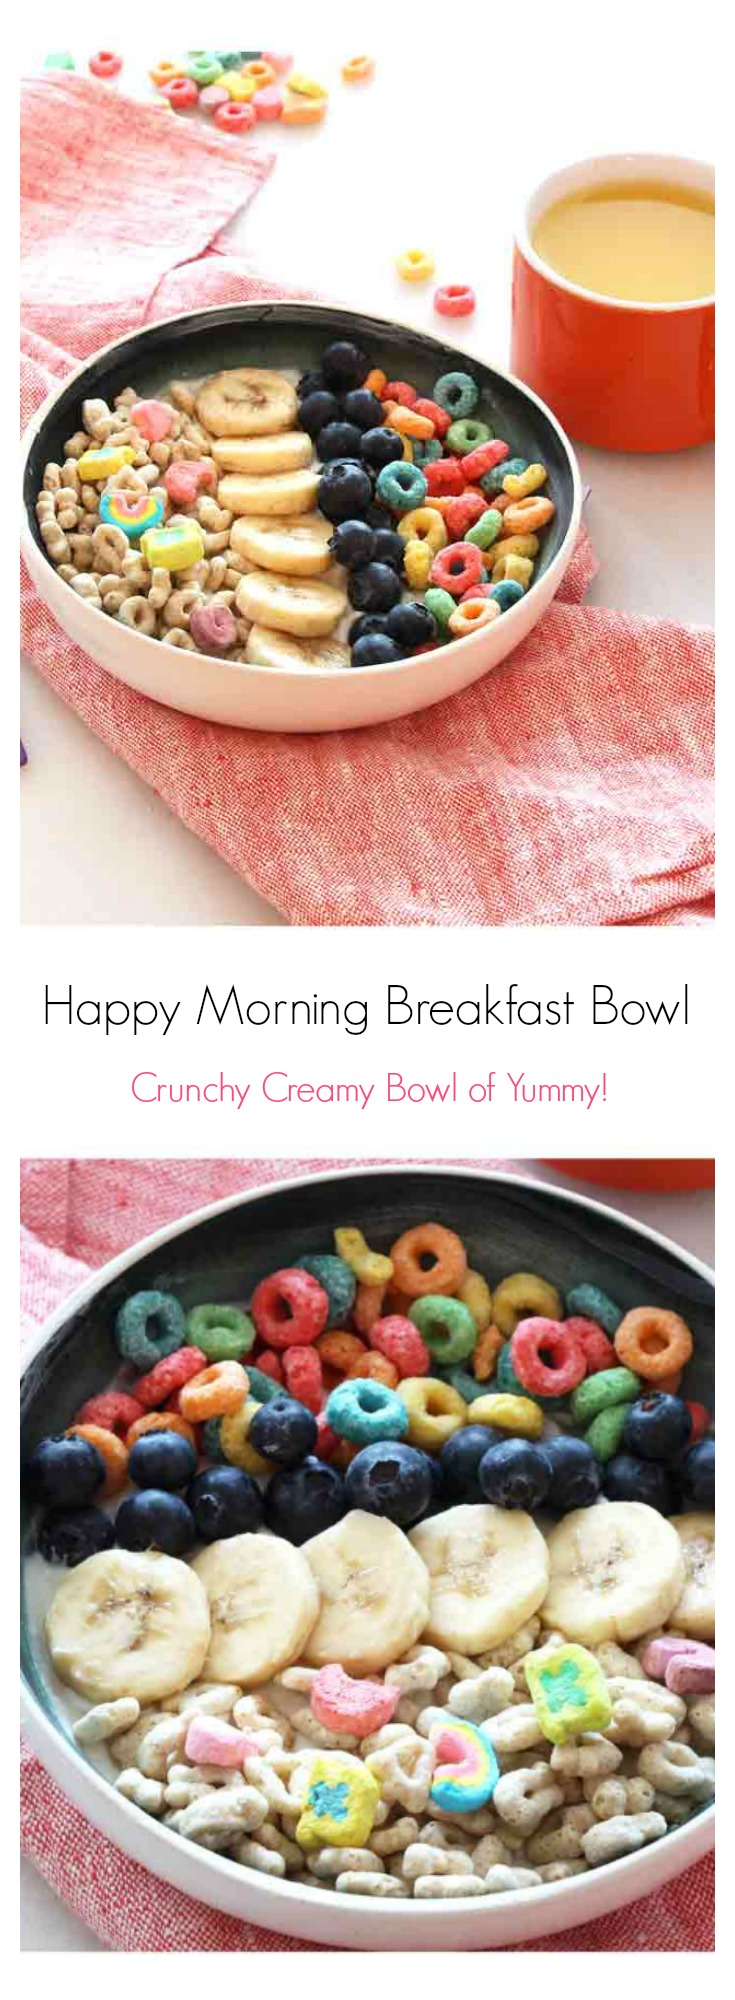 Breakfast is the most important meal of the day, so it shouldn't be boring. Quick is key, and this speedy recipe provides a crunchy, creamy, colorful bowl. ChopHappy.com